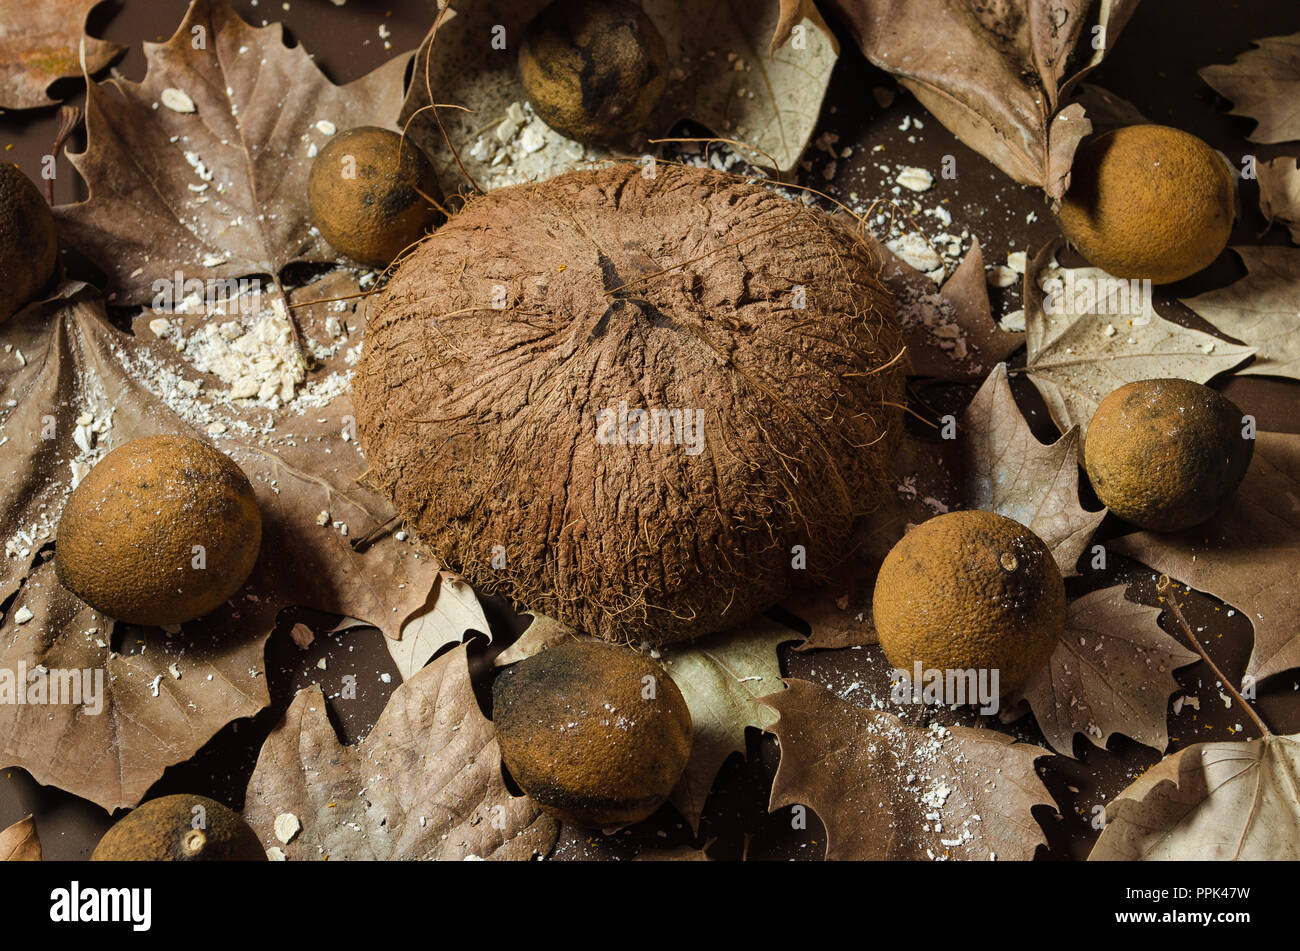 Coconut dry in half on a brown background, surrounded by dry and yellowish lemons, decorated with dried leaves, beautiful background for texts and dec - Stock Image